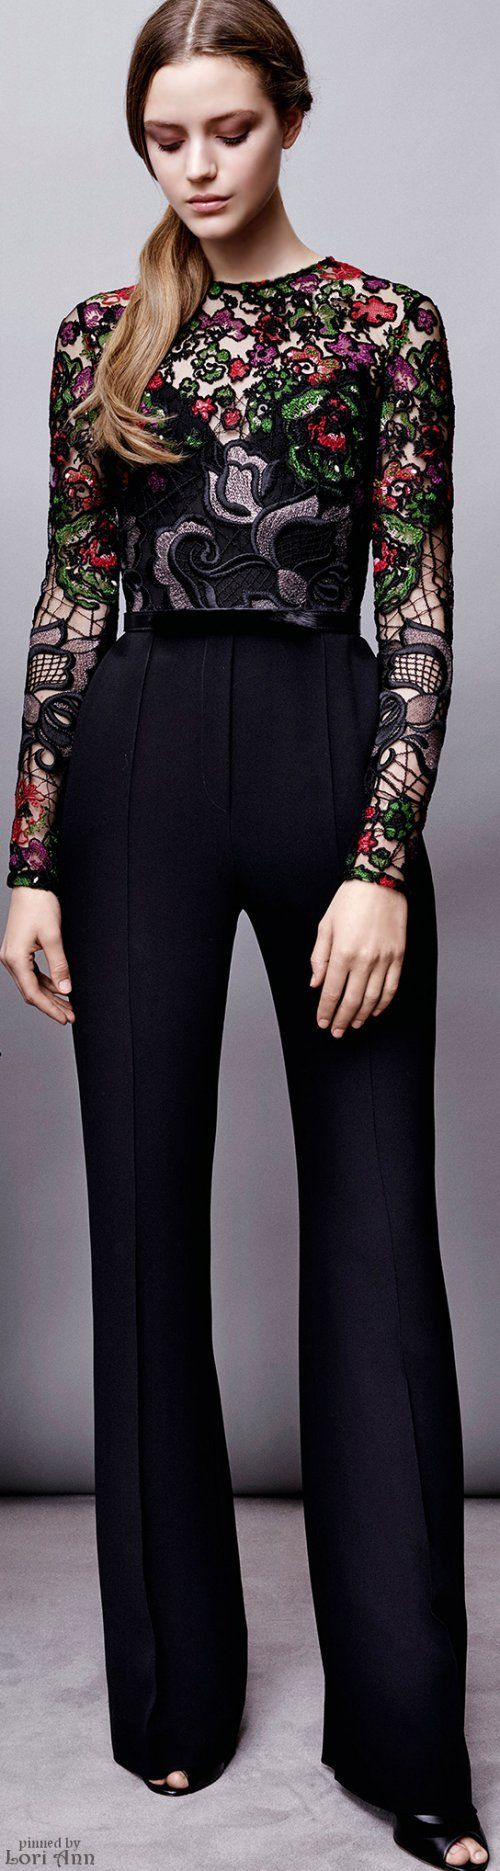 Elie Saab Pre-Fall 2015/love the pants,but the shirt is a little out there...maybe just black lace instead